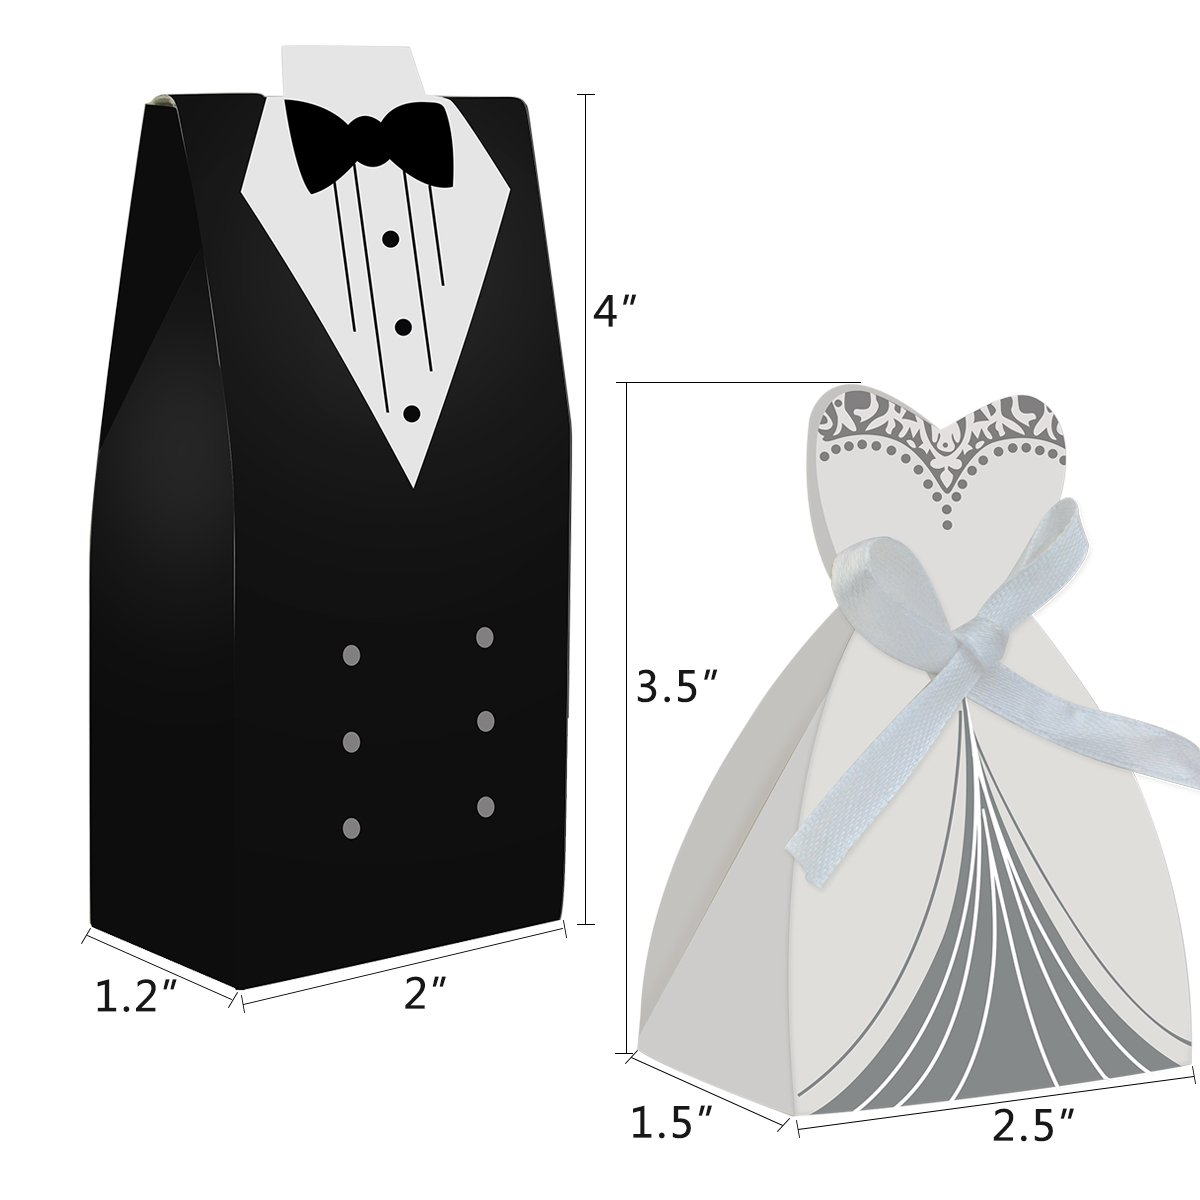 Amazon.com: cnomg 100pcs Party Wedding Favor Dress & Tuxedo Bride ...